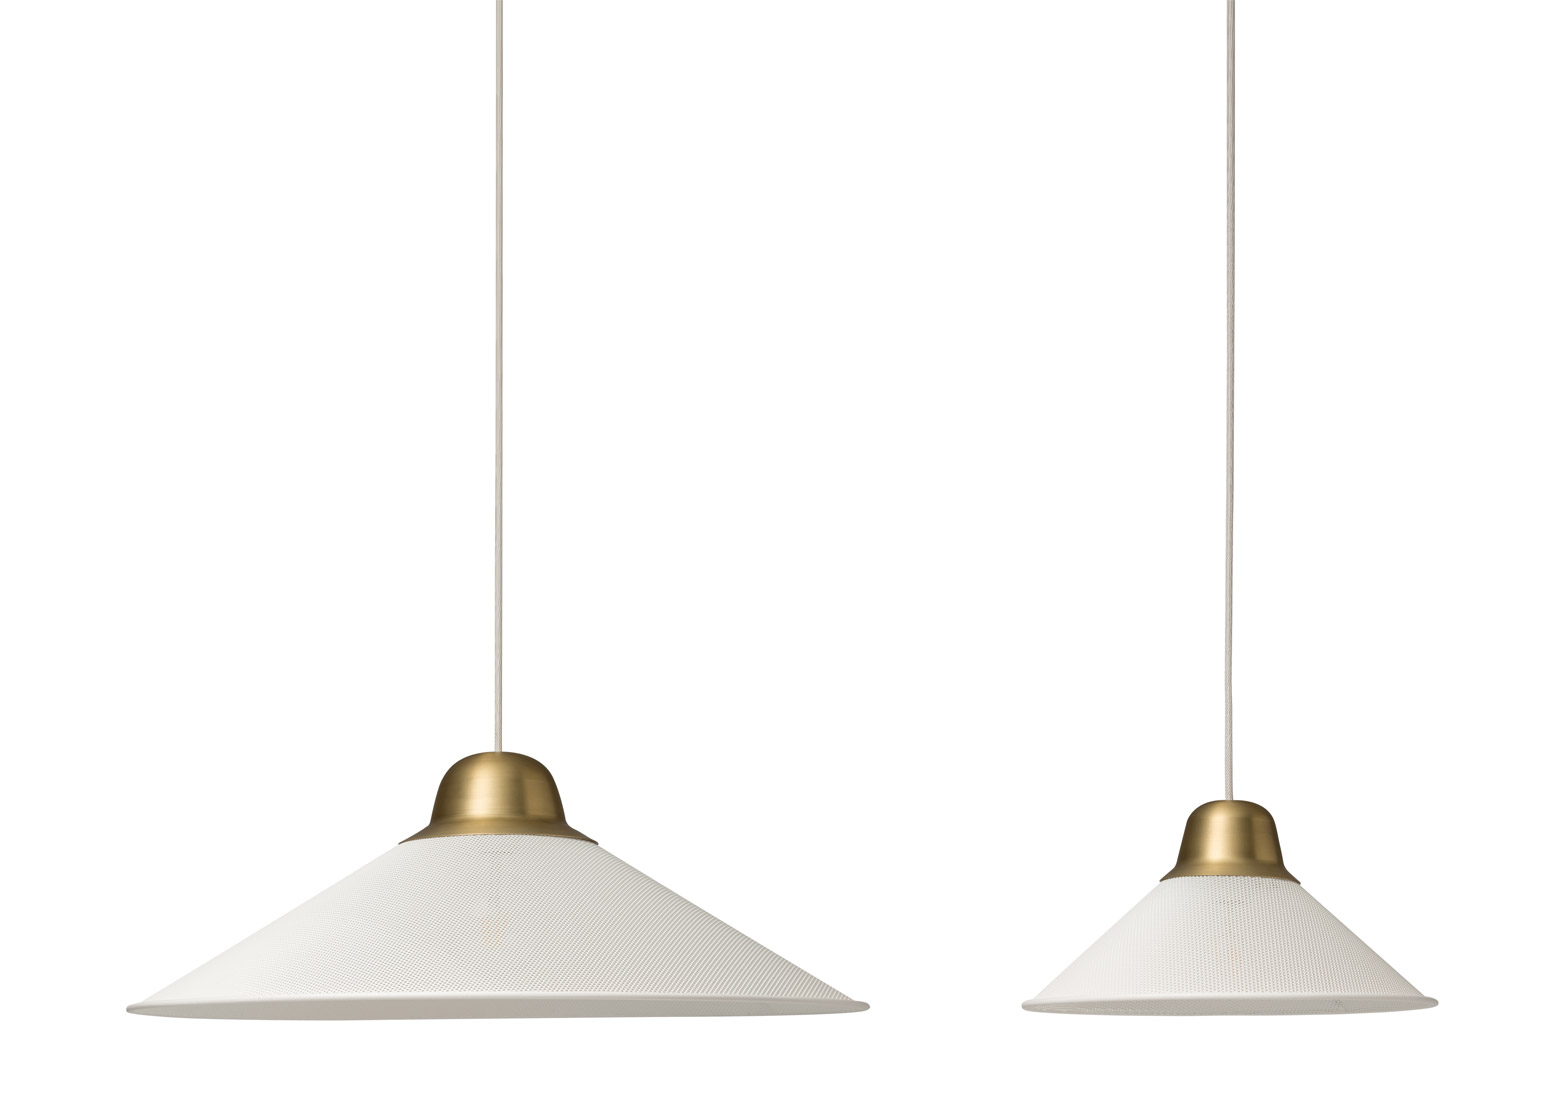 Petite Friture adds sausage lamps to collection